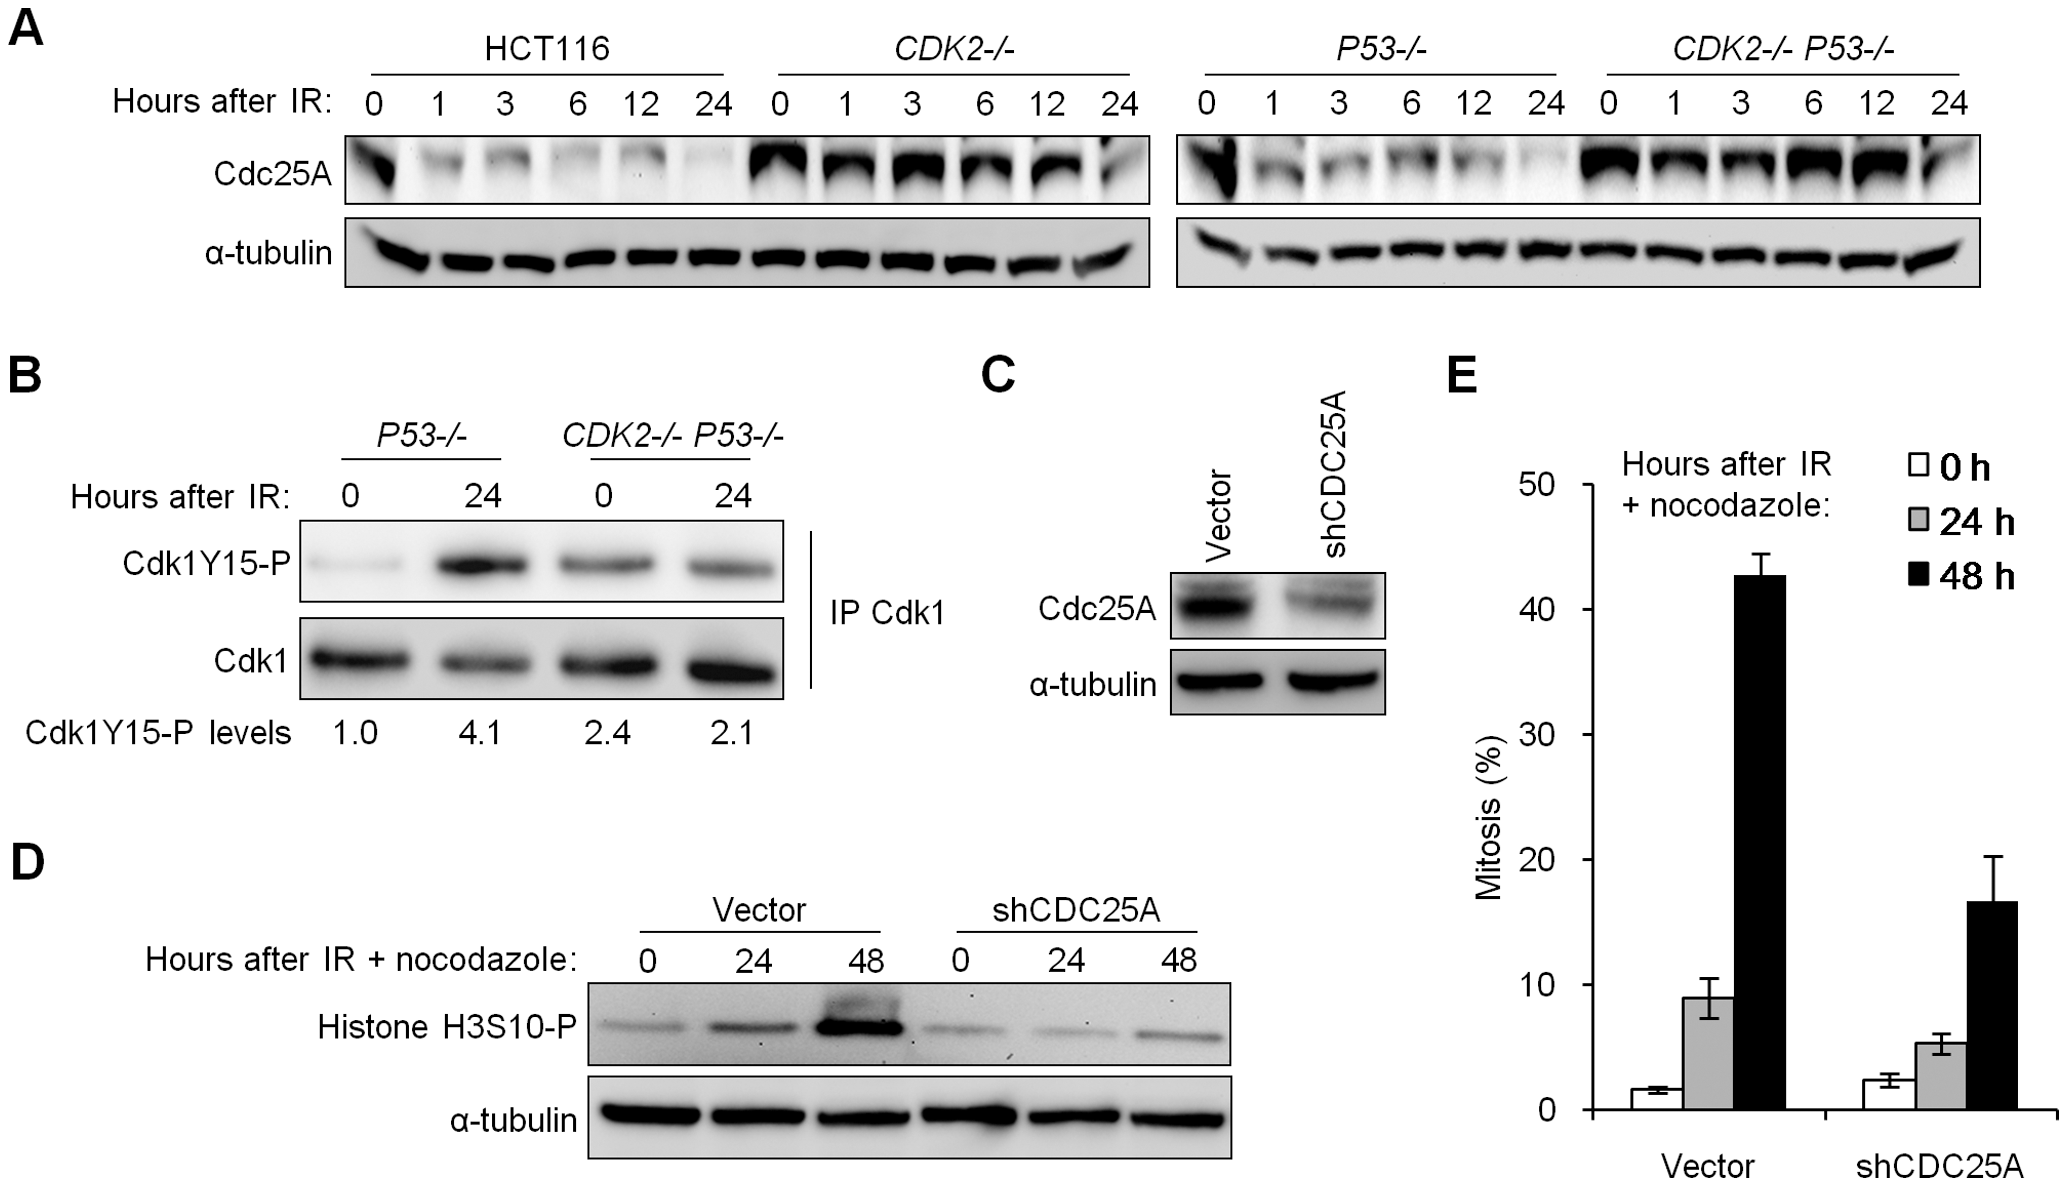 Impaired degradation of Cdc25A in Cdk2-deficient cells contributes to G<sub>2</sub>/M checkpoint defect.